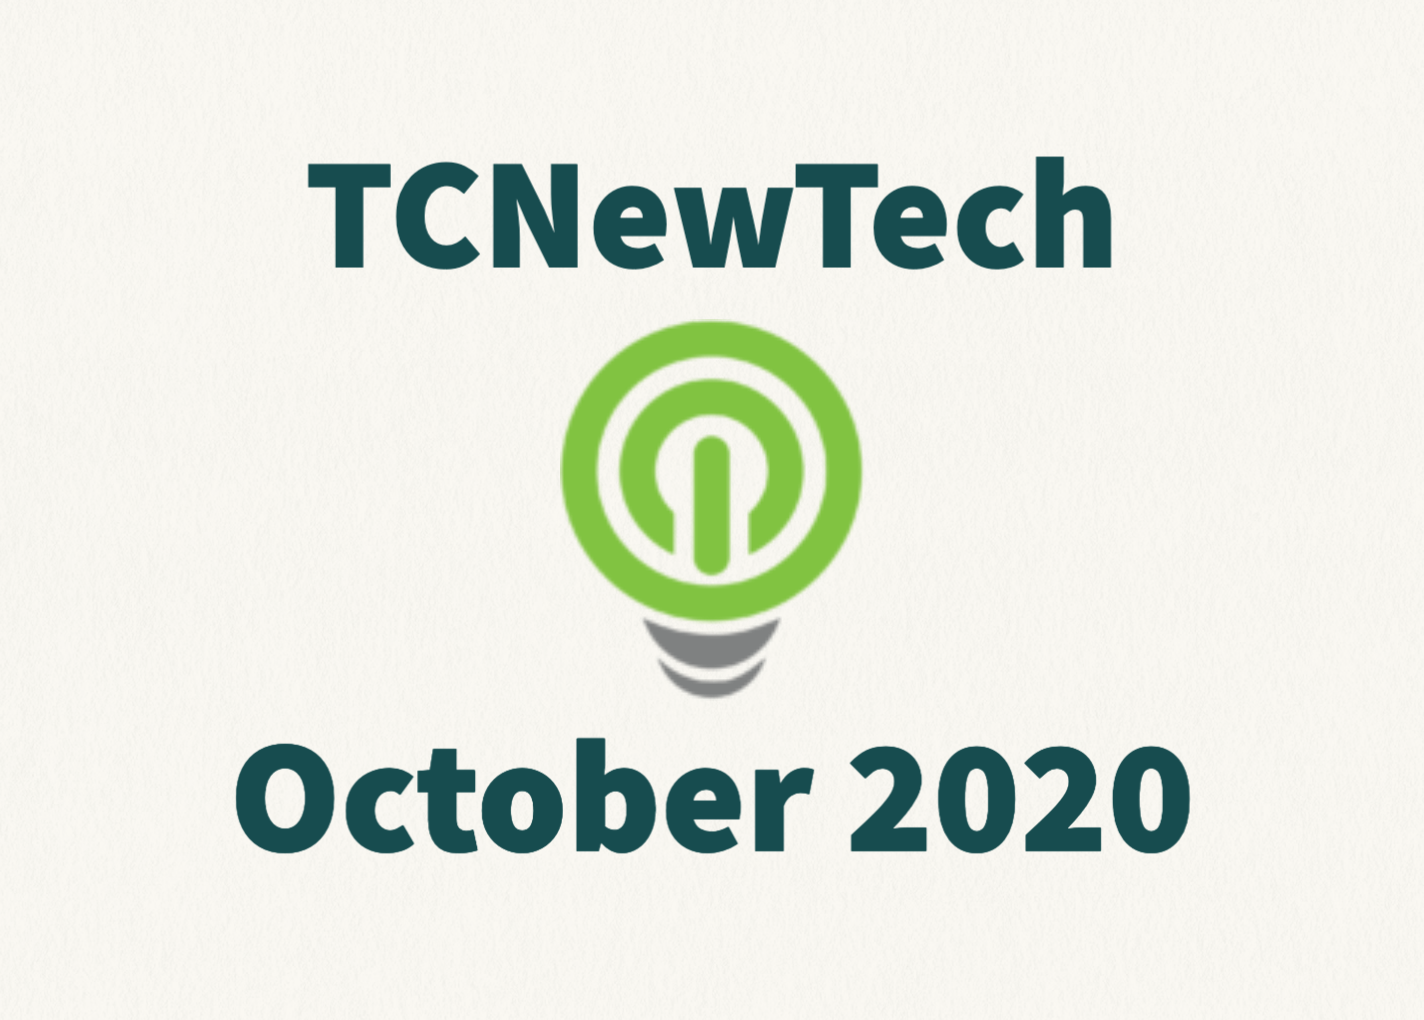 TCNewTech Pitch Contest October 2020